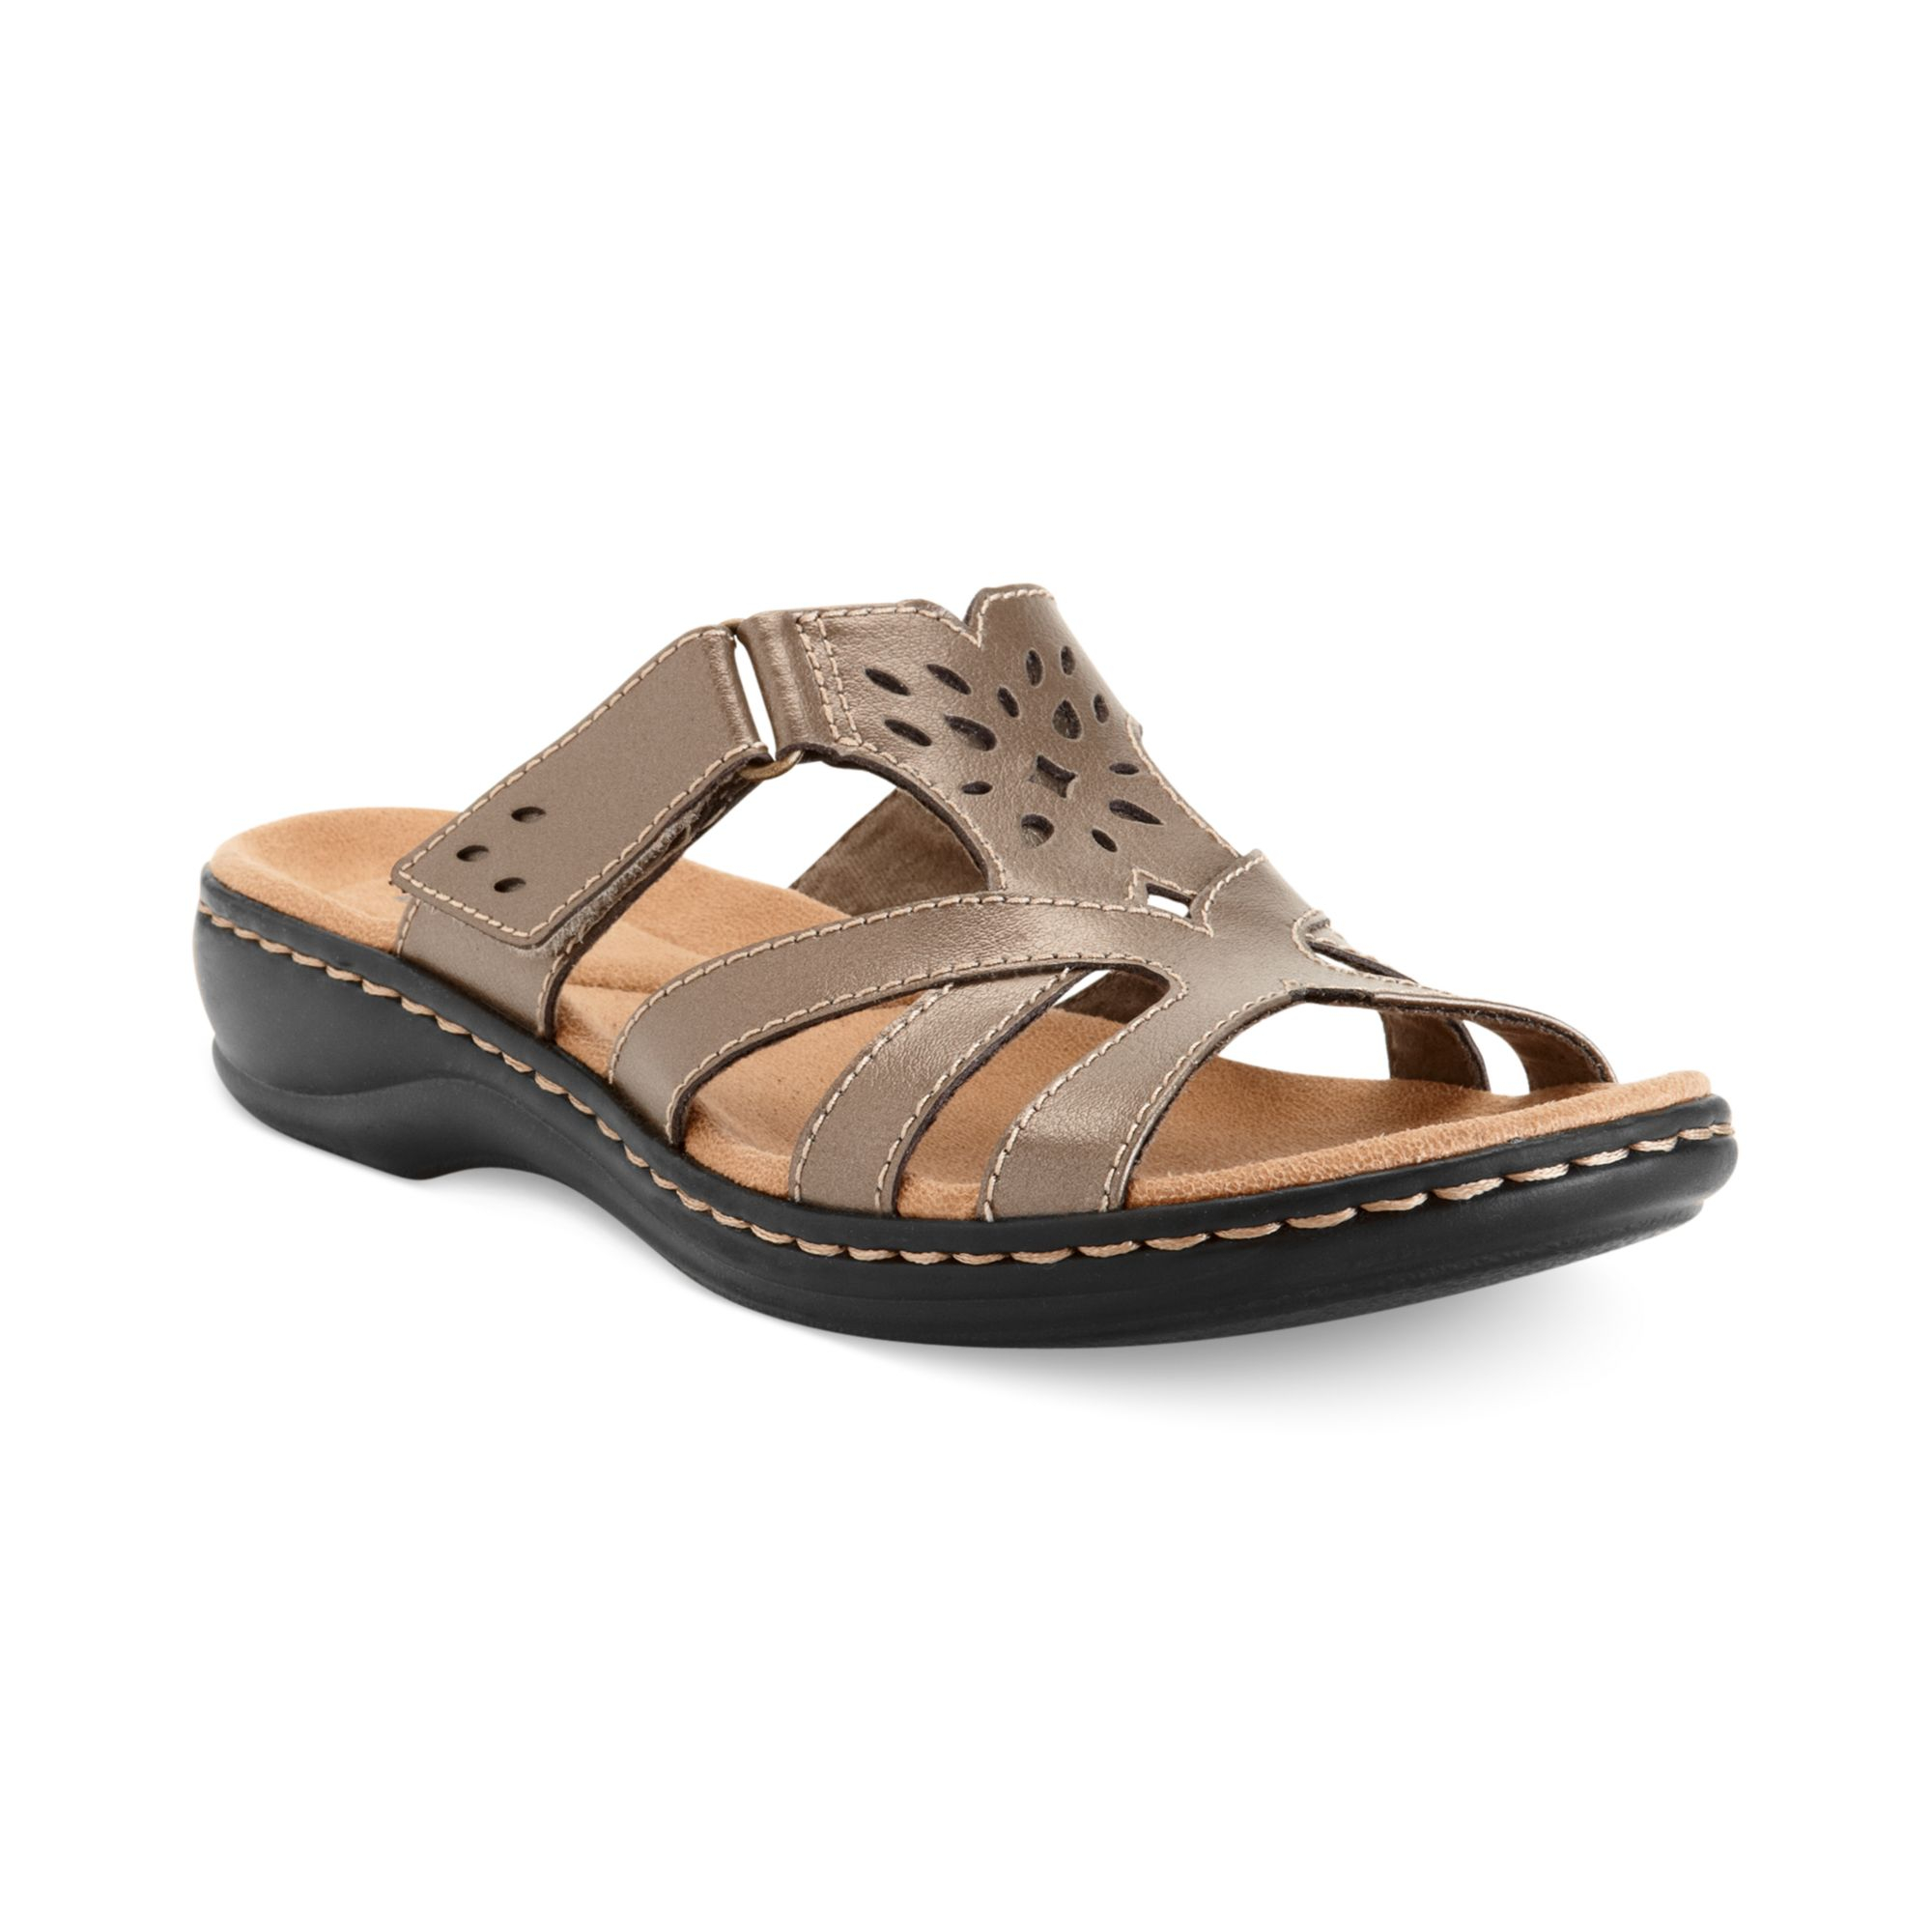 Wonderful Clarks Judge Sandal For Women | Wwathleticshoess